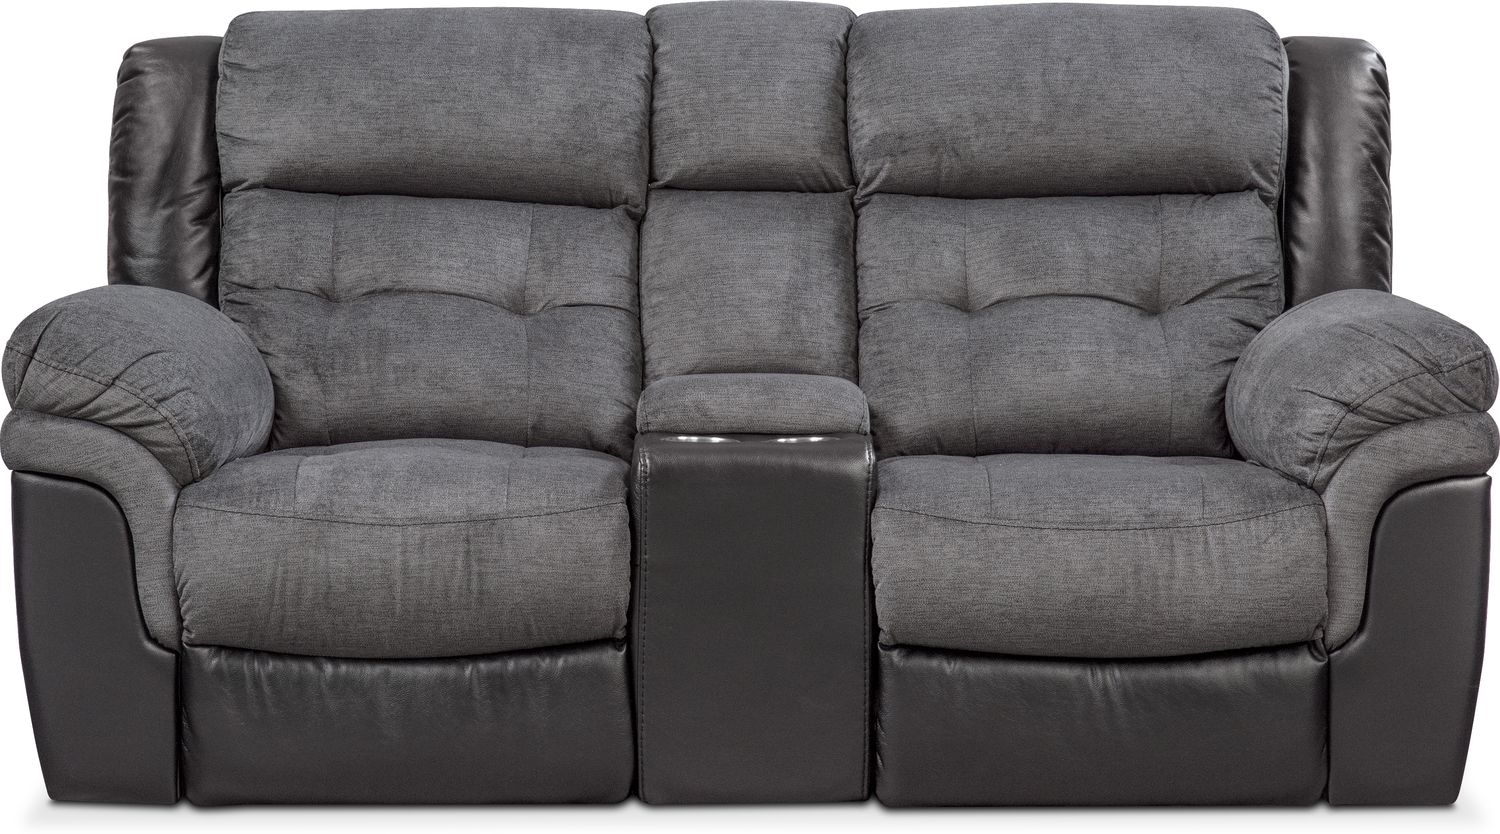 Click to change image. & Tacoma Dual Power Reclining Loveseat with Console - Black | Value ... islam-shia.org